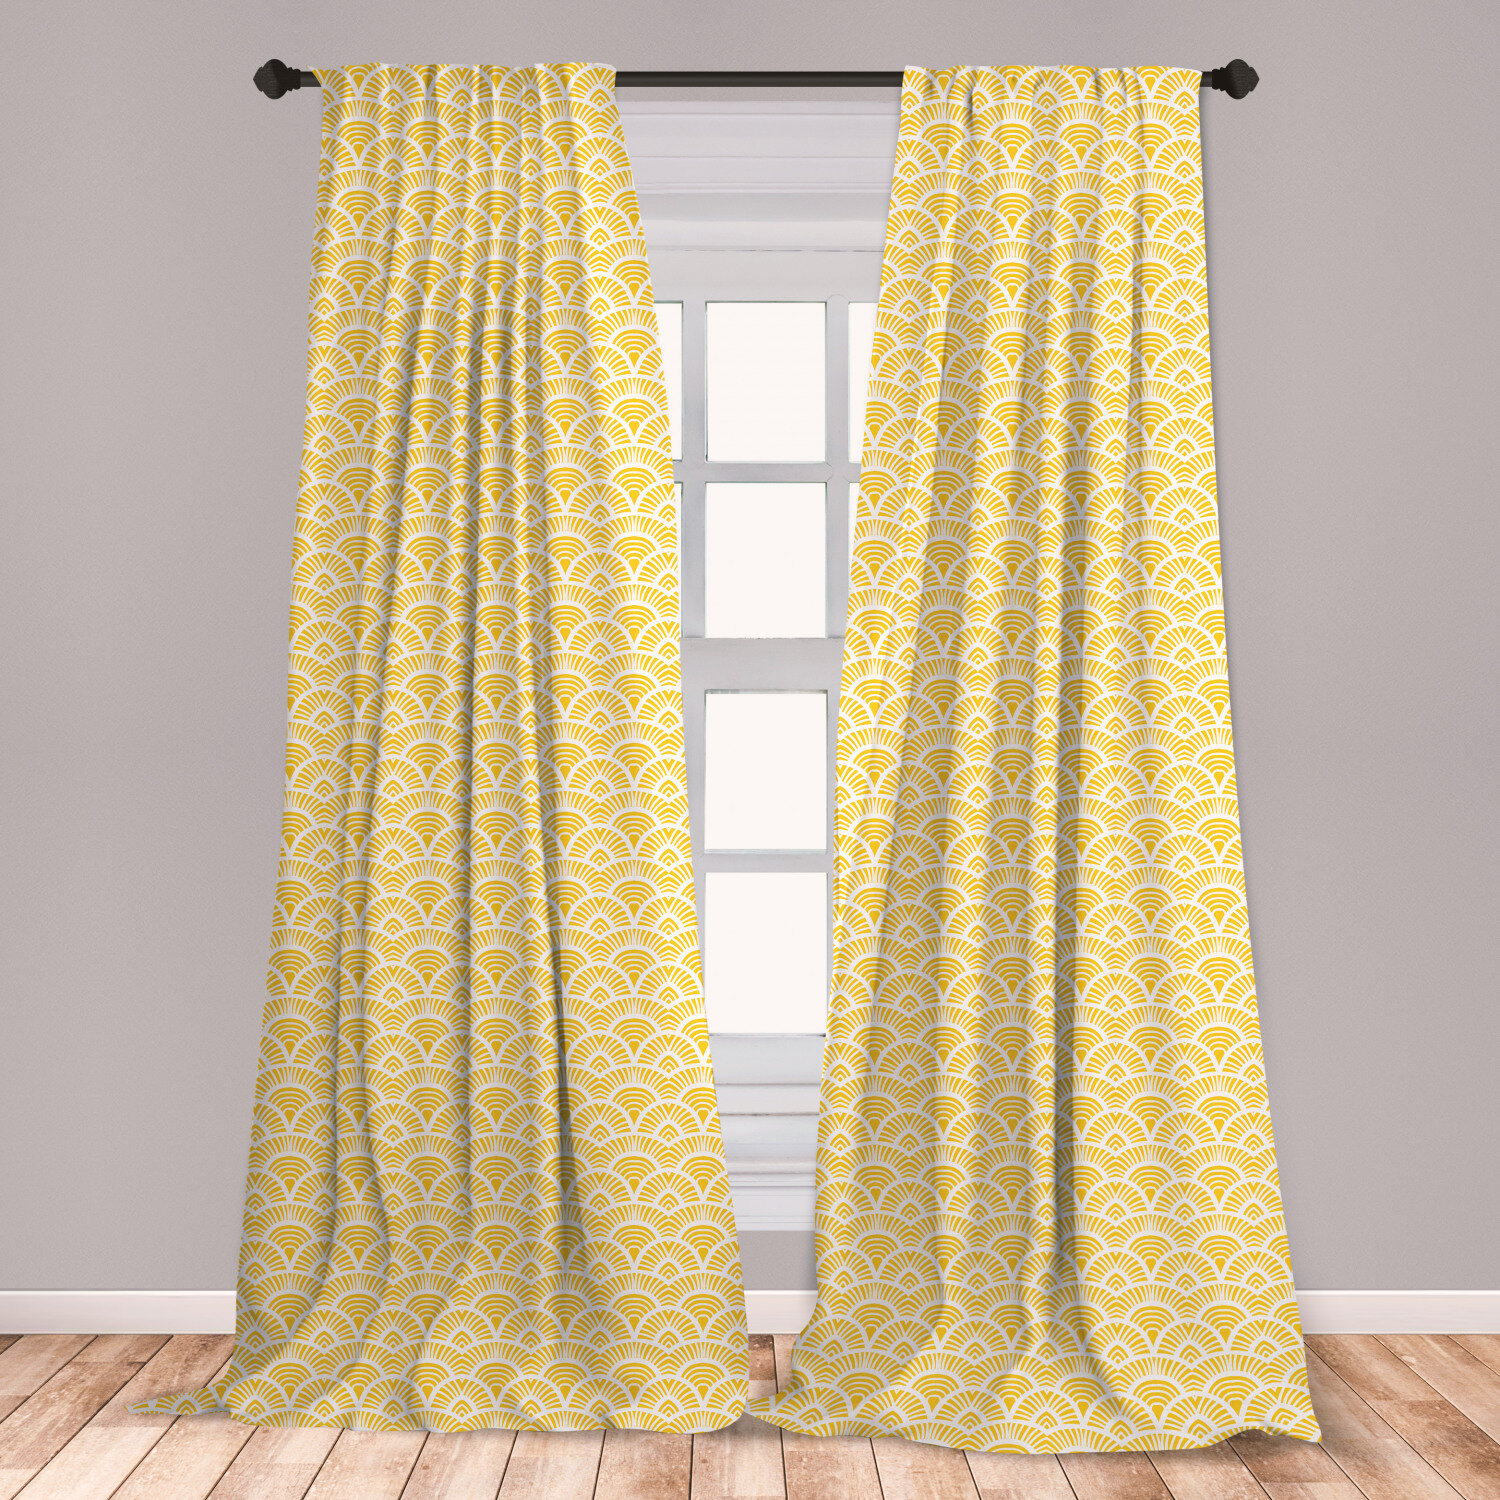 White And Black Sheer Curtains For Bedroom 63 Inches Stripe Window Curtain Drapes Rod Pocket 2